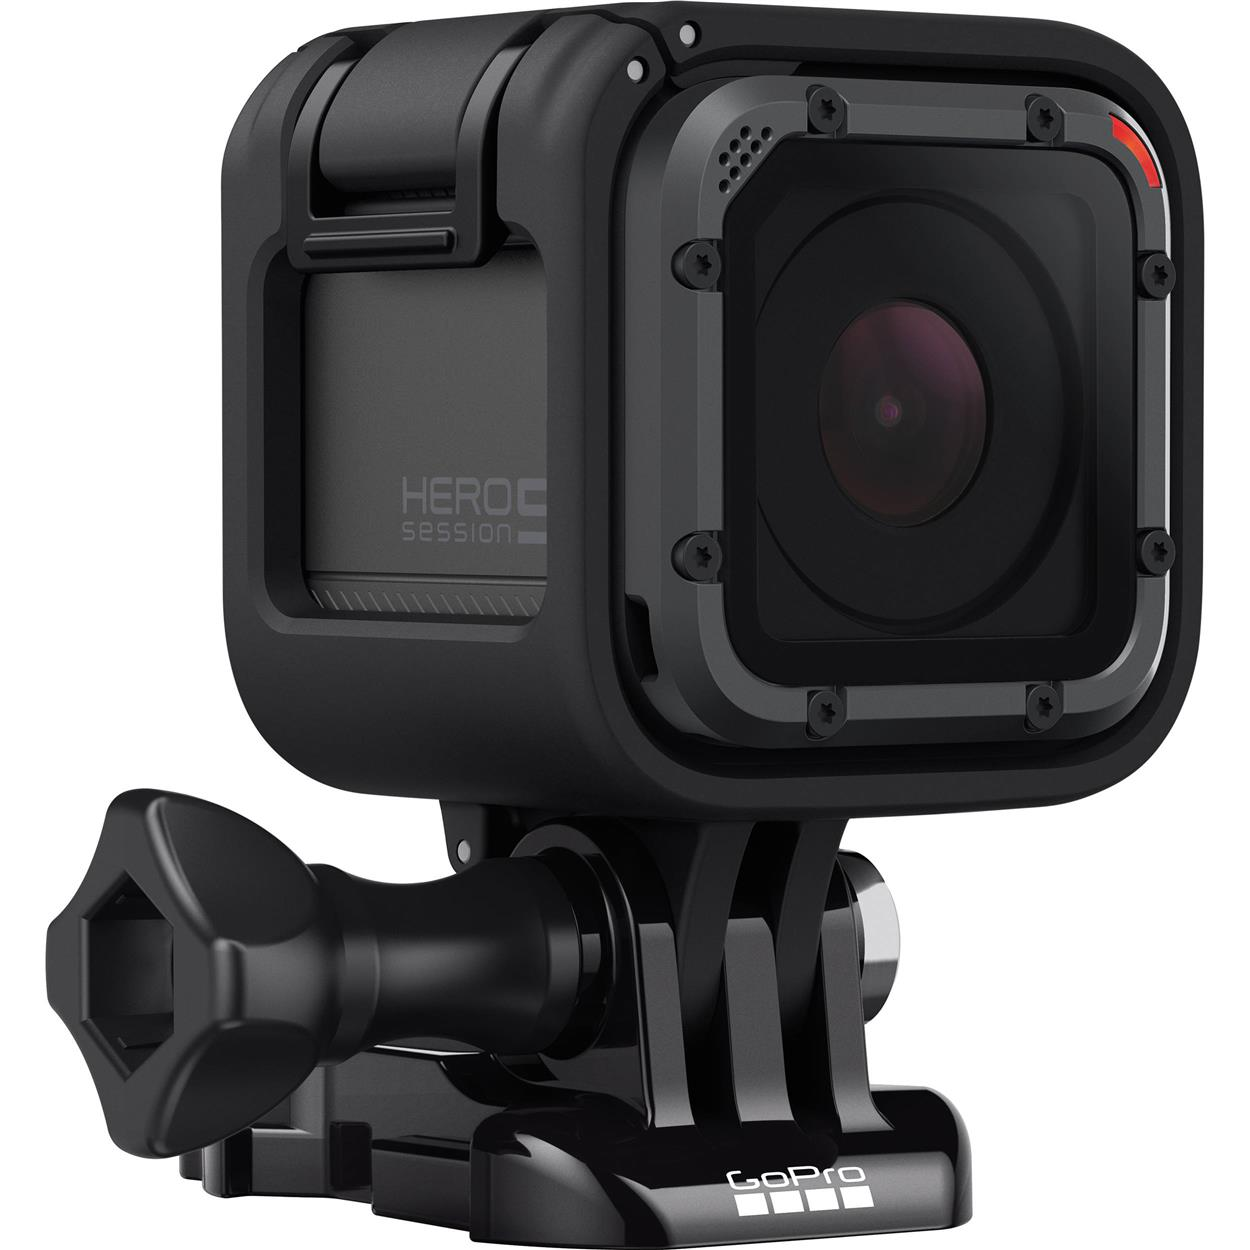 Original GoPRO Hero 5 Hero5 Session adventure action camera